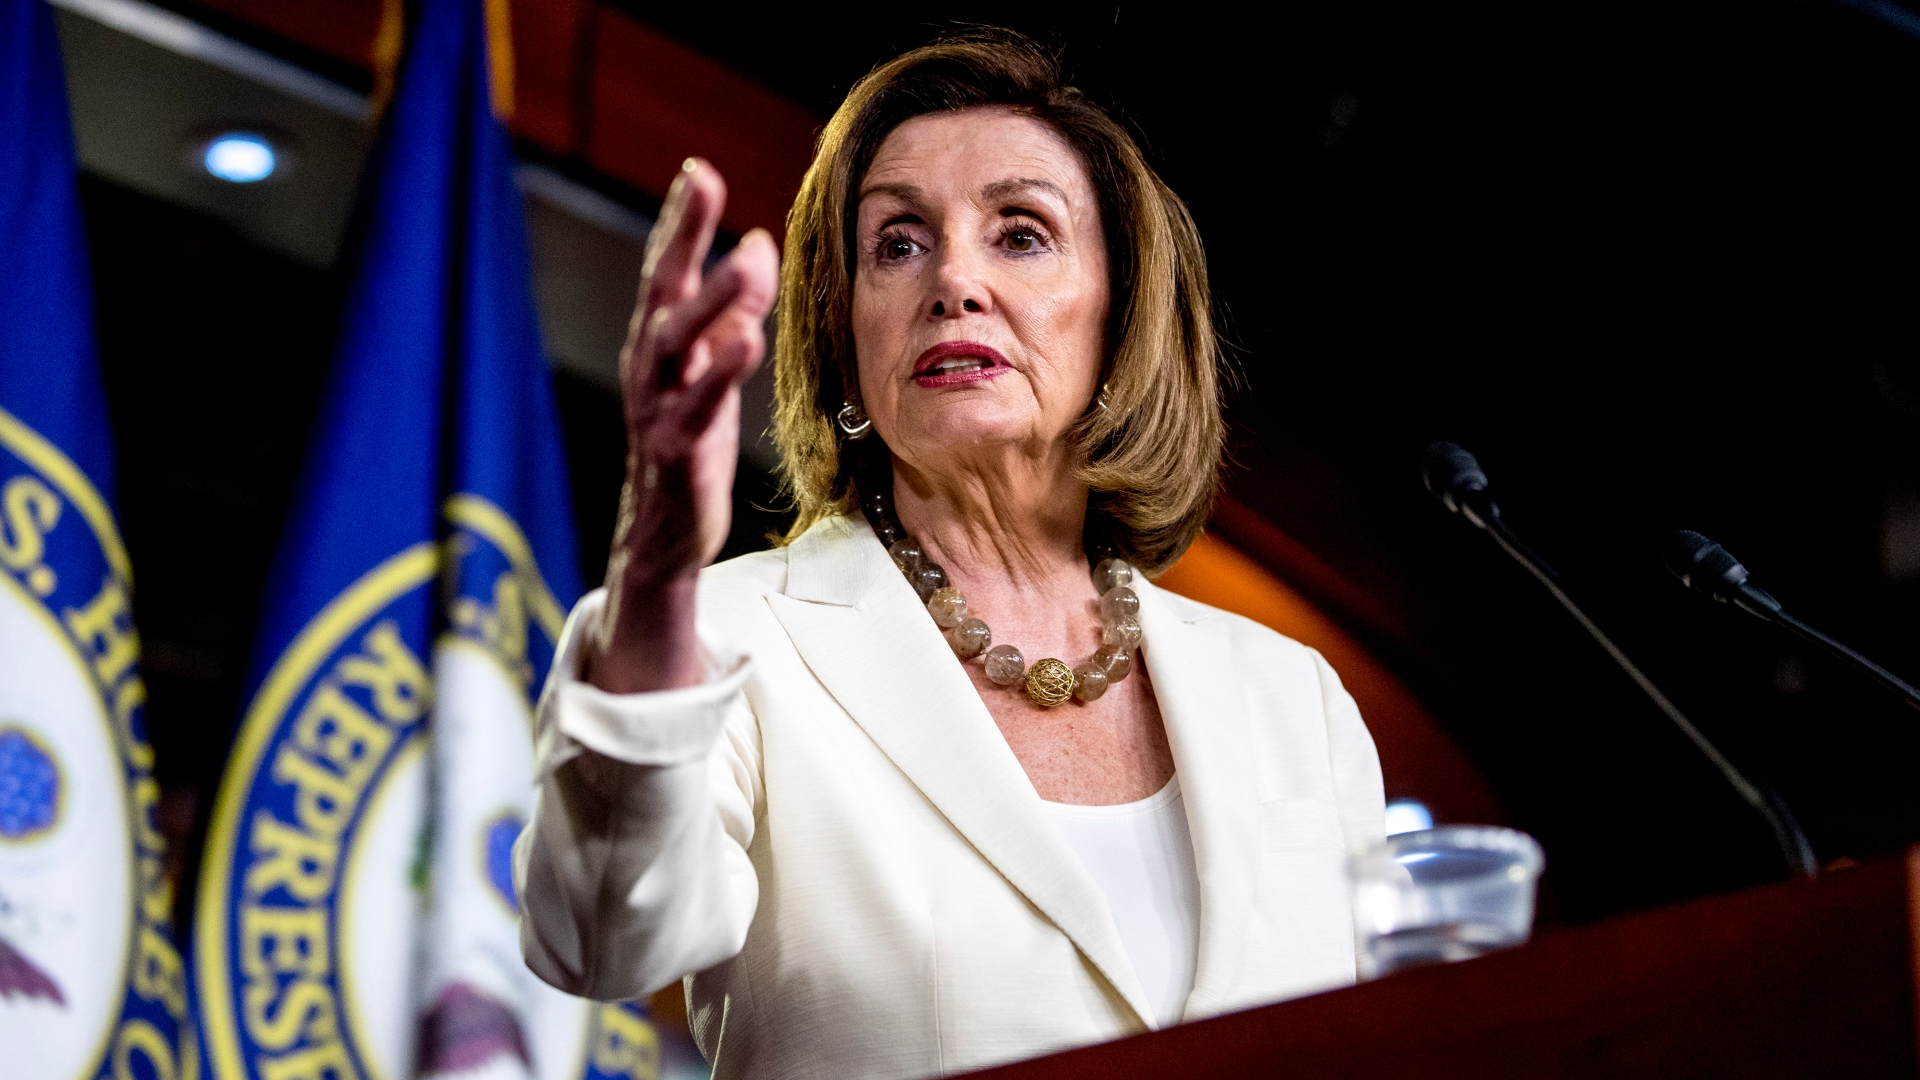 Pelosi trying to run political playbook of first speakership under Trump rules